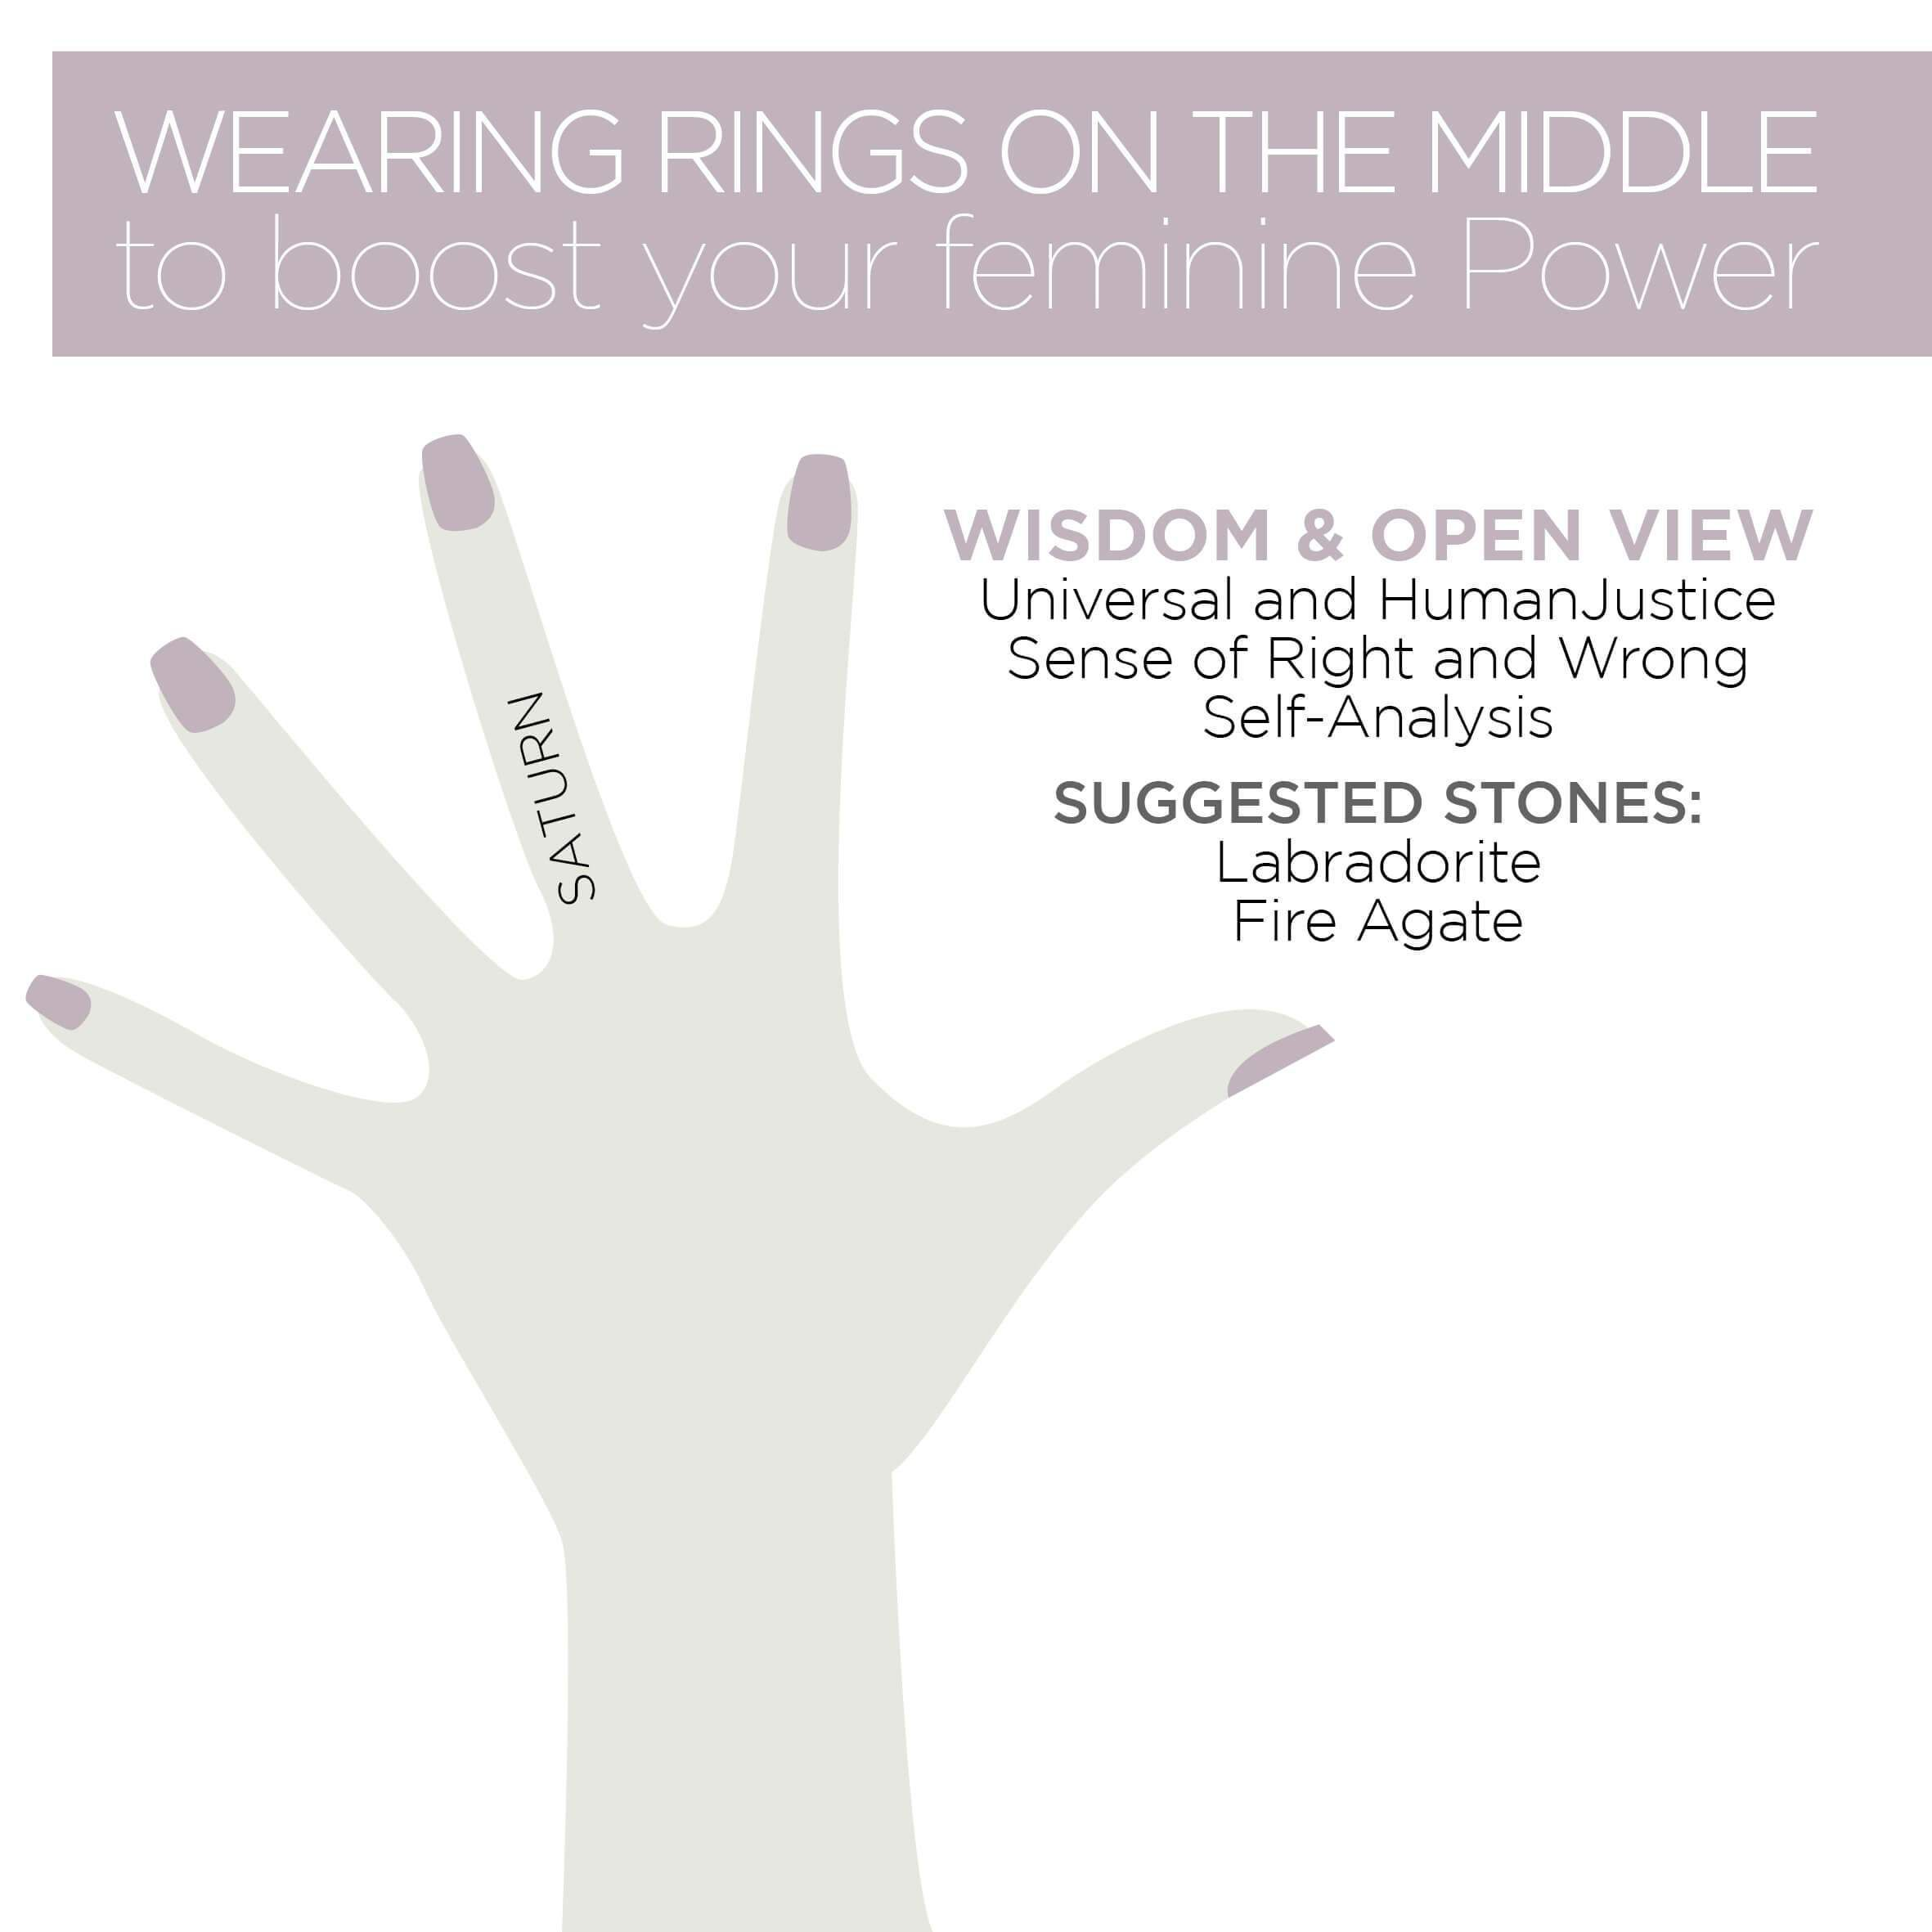 How to Enhance your Feminine Power Accordingly with Finger